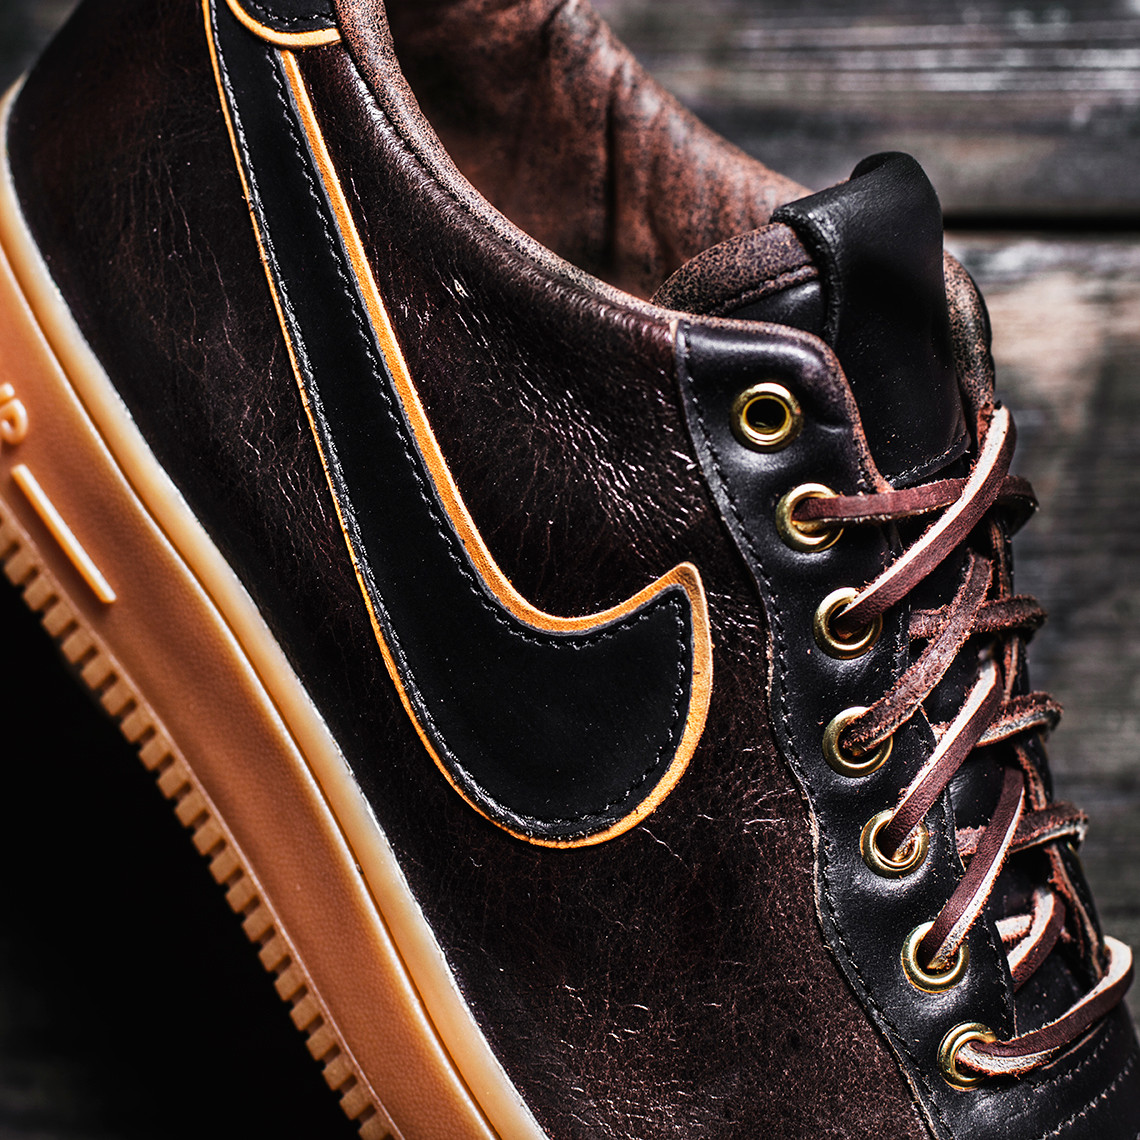 jack-daniels-the-shoe-surgeon-air-force-1-all-star-weekend-release4